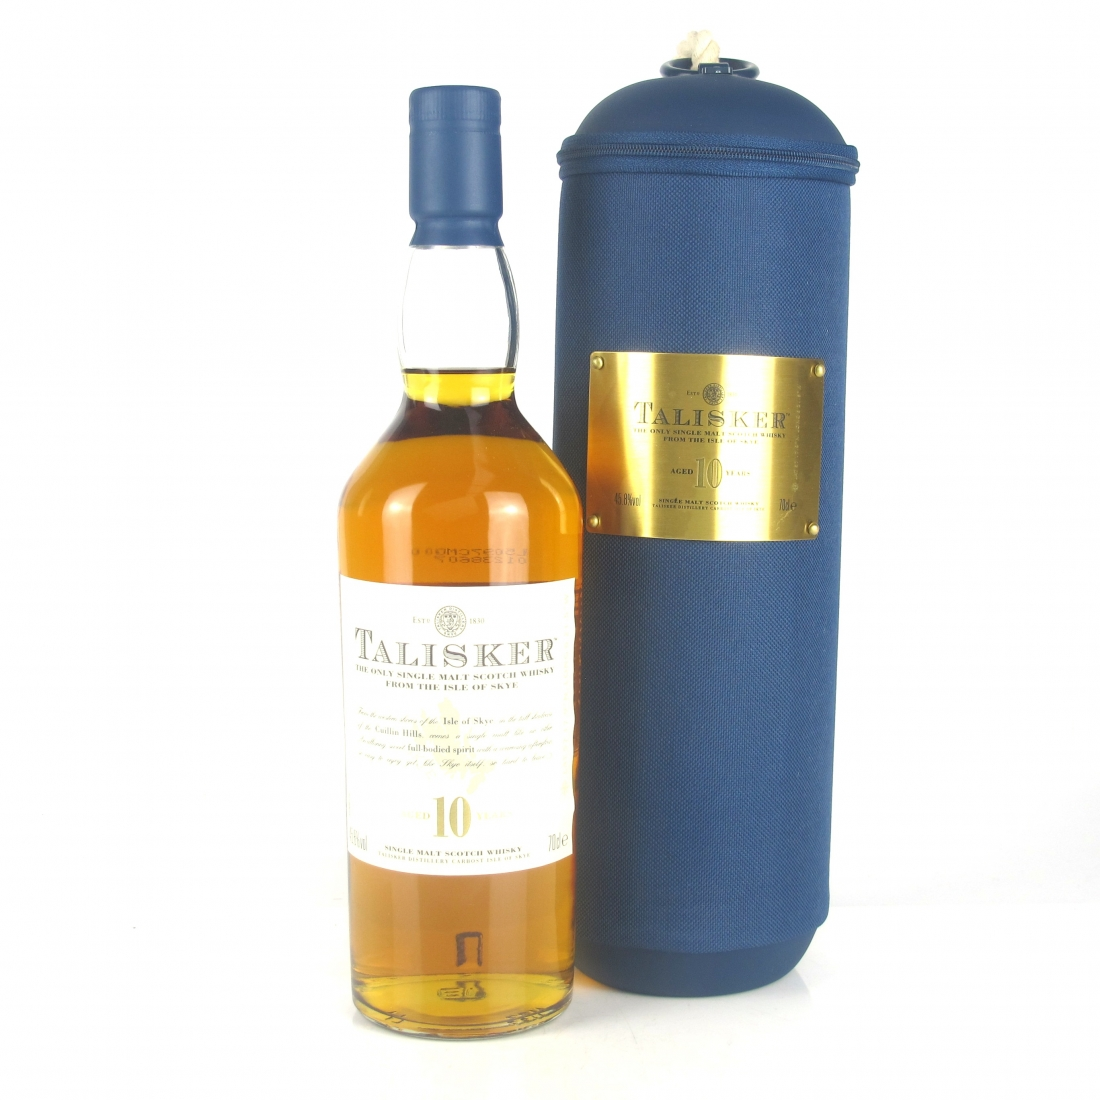 Talisker 10 Year Old RNLI Edition